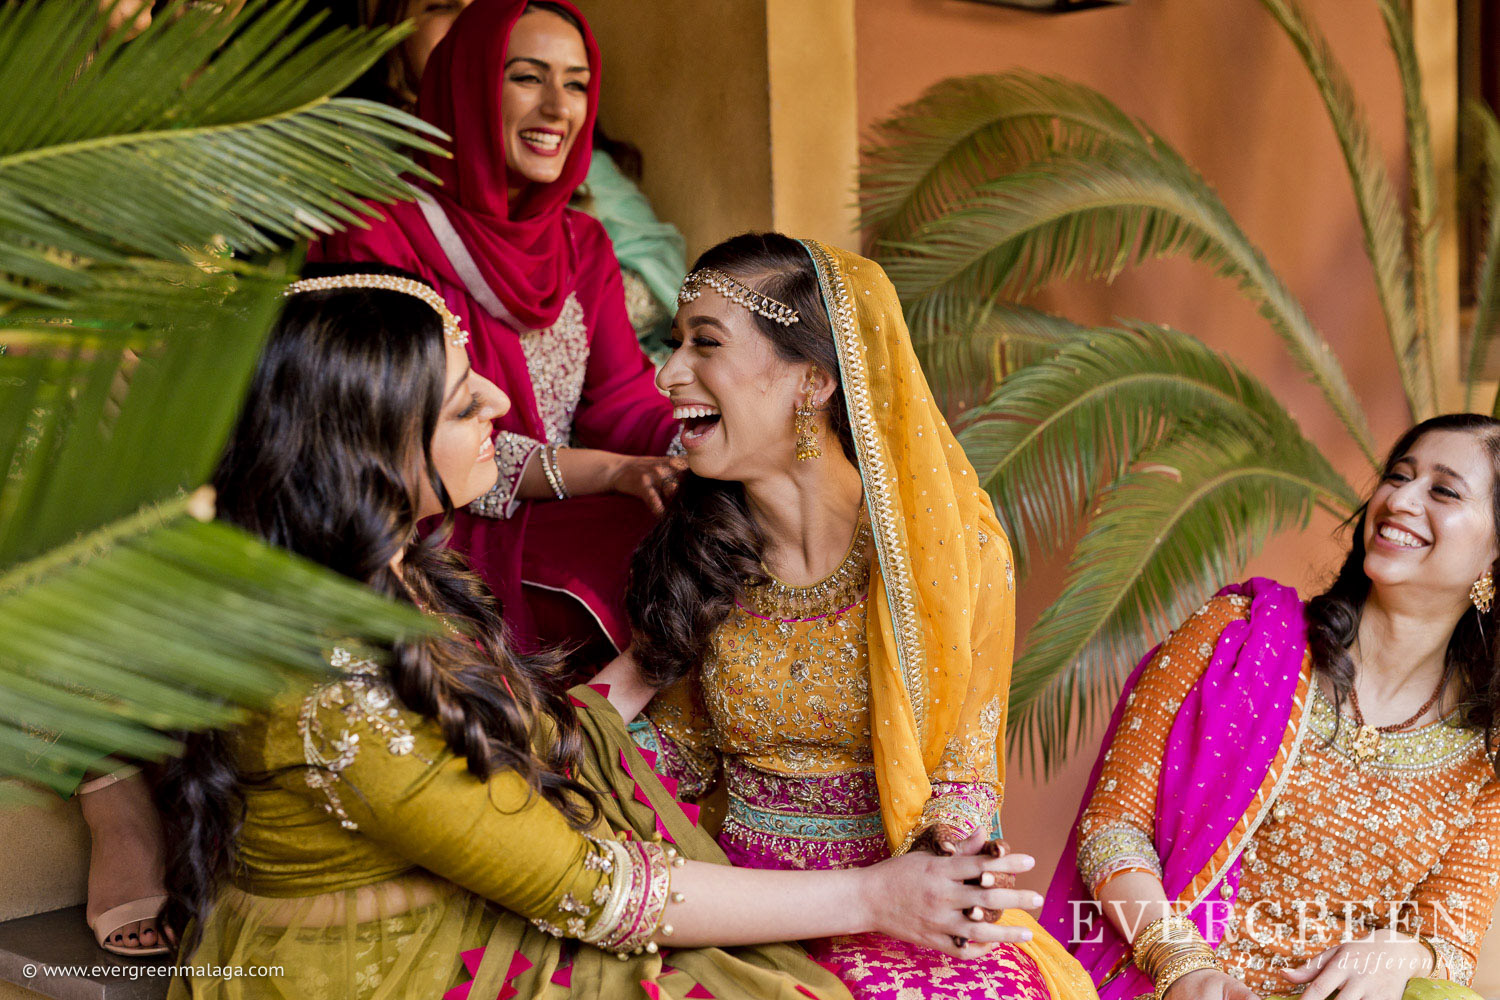 AWOL Granada, Wedding Planner, Spain, Indian Wedding, Ladies having fun